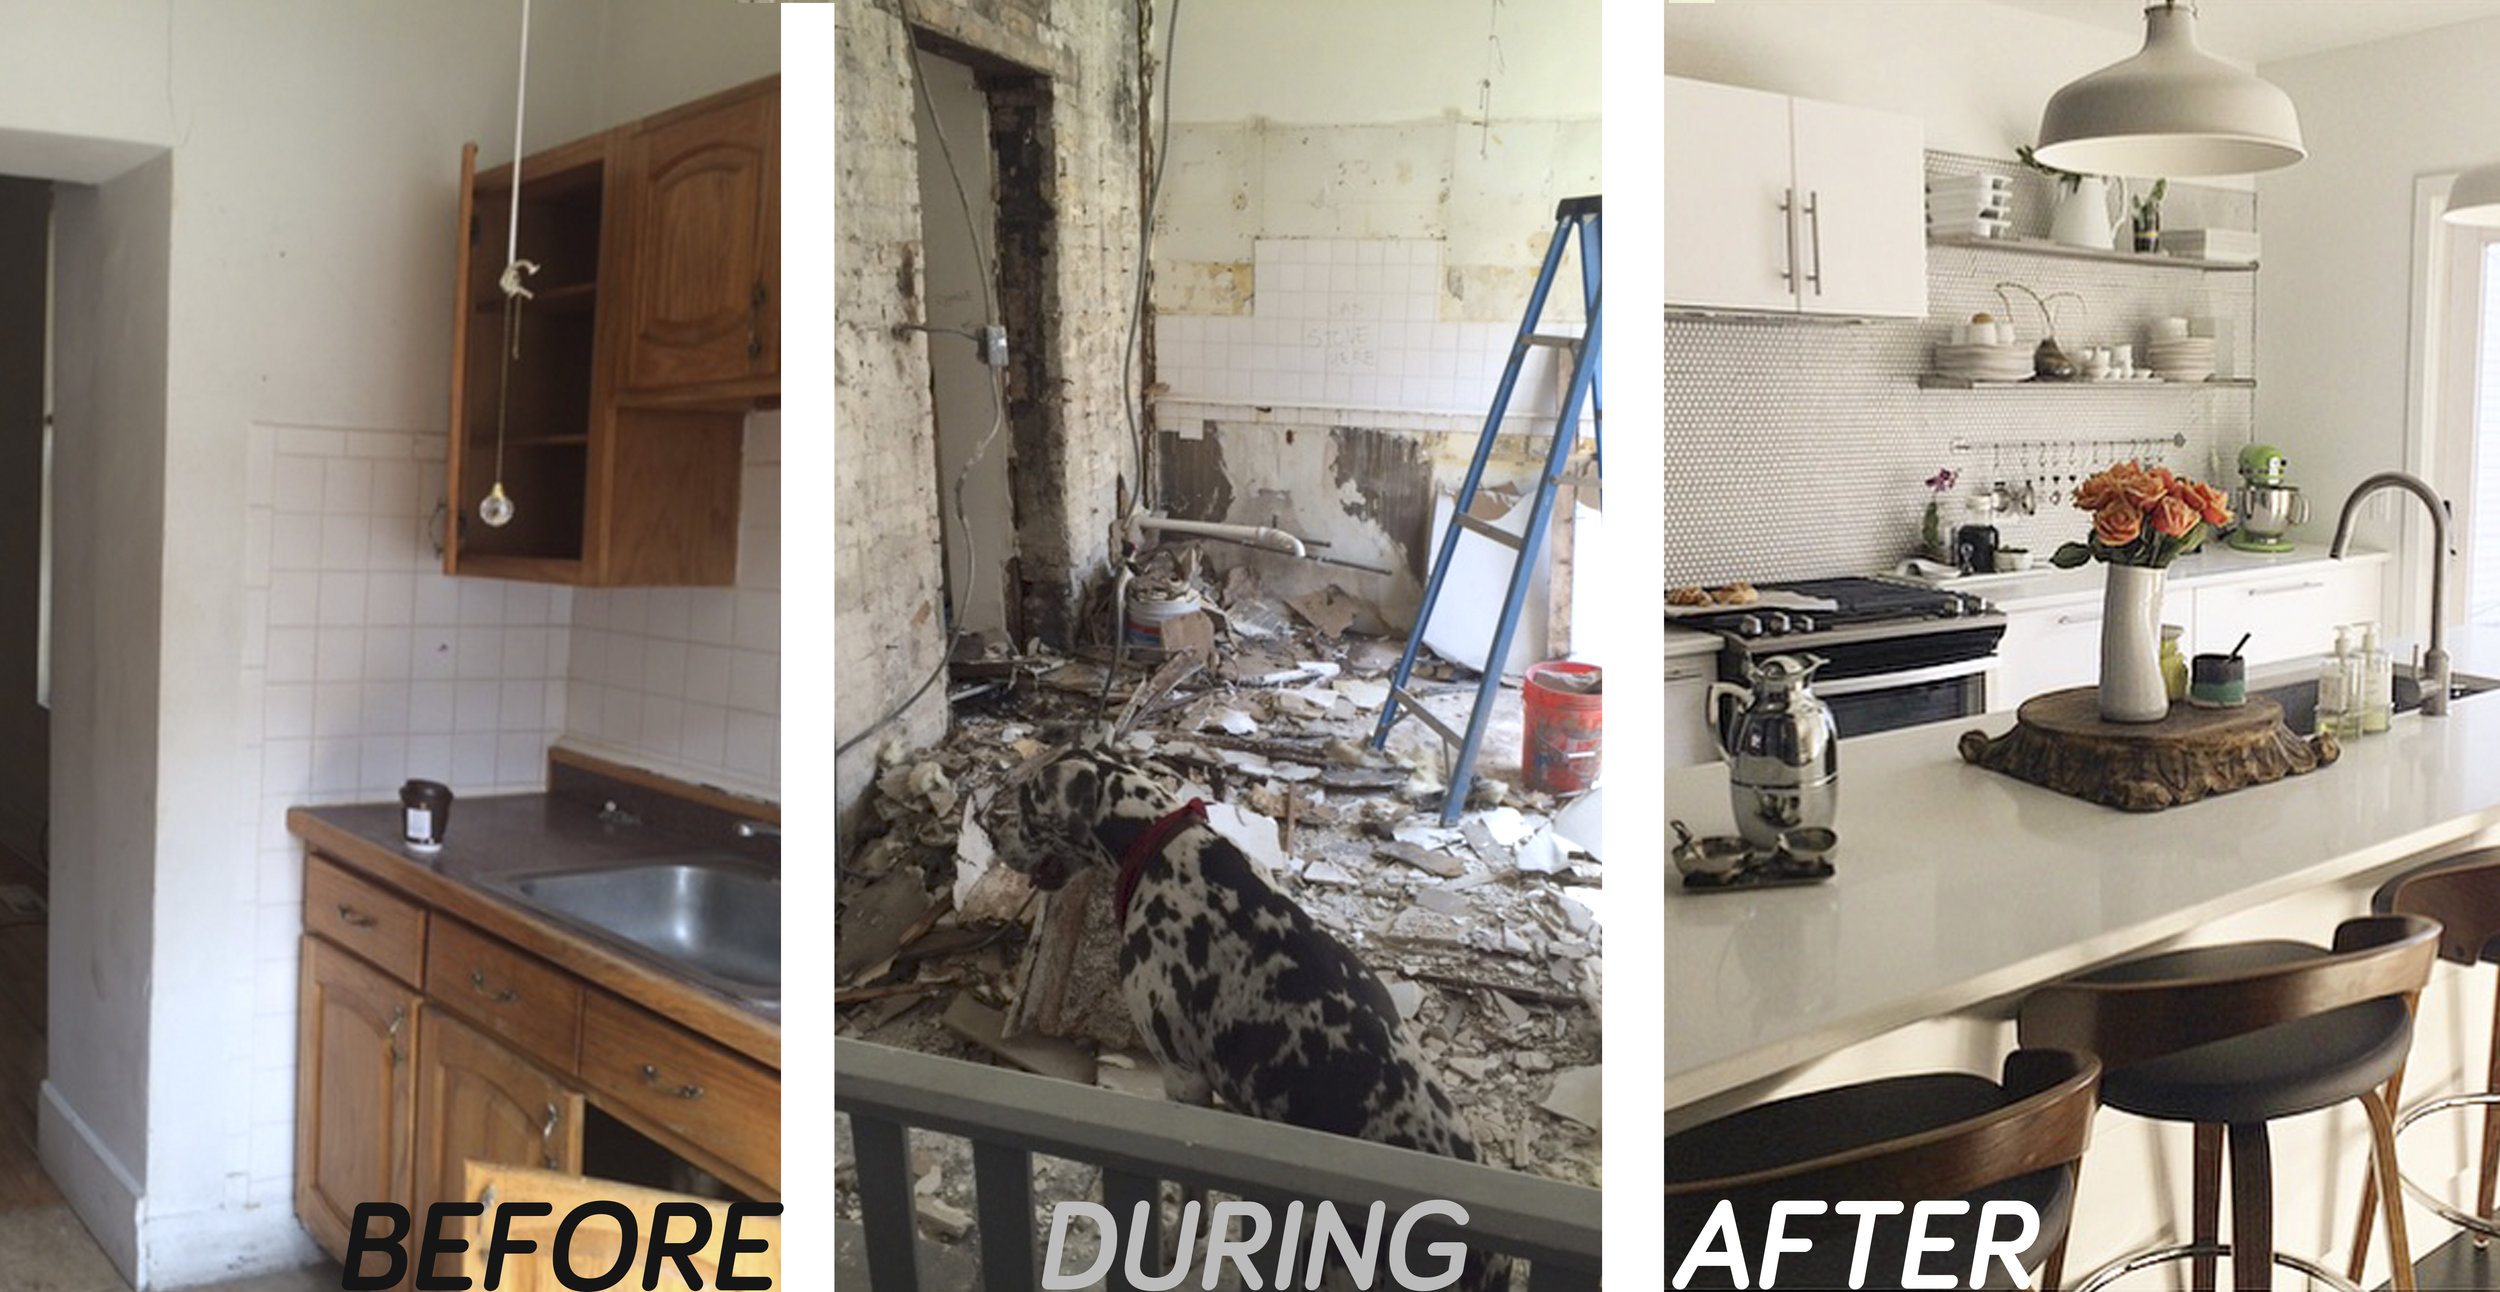 Before-After kitchen.jpg